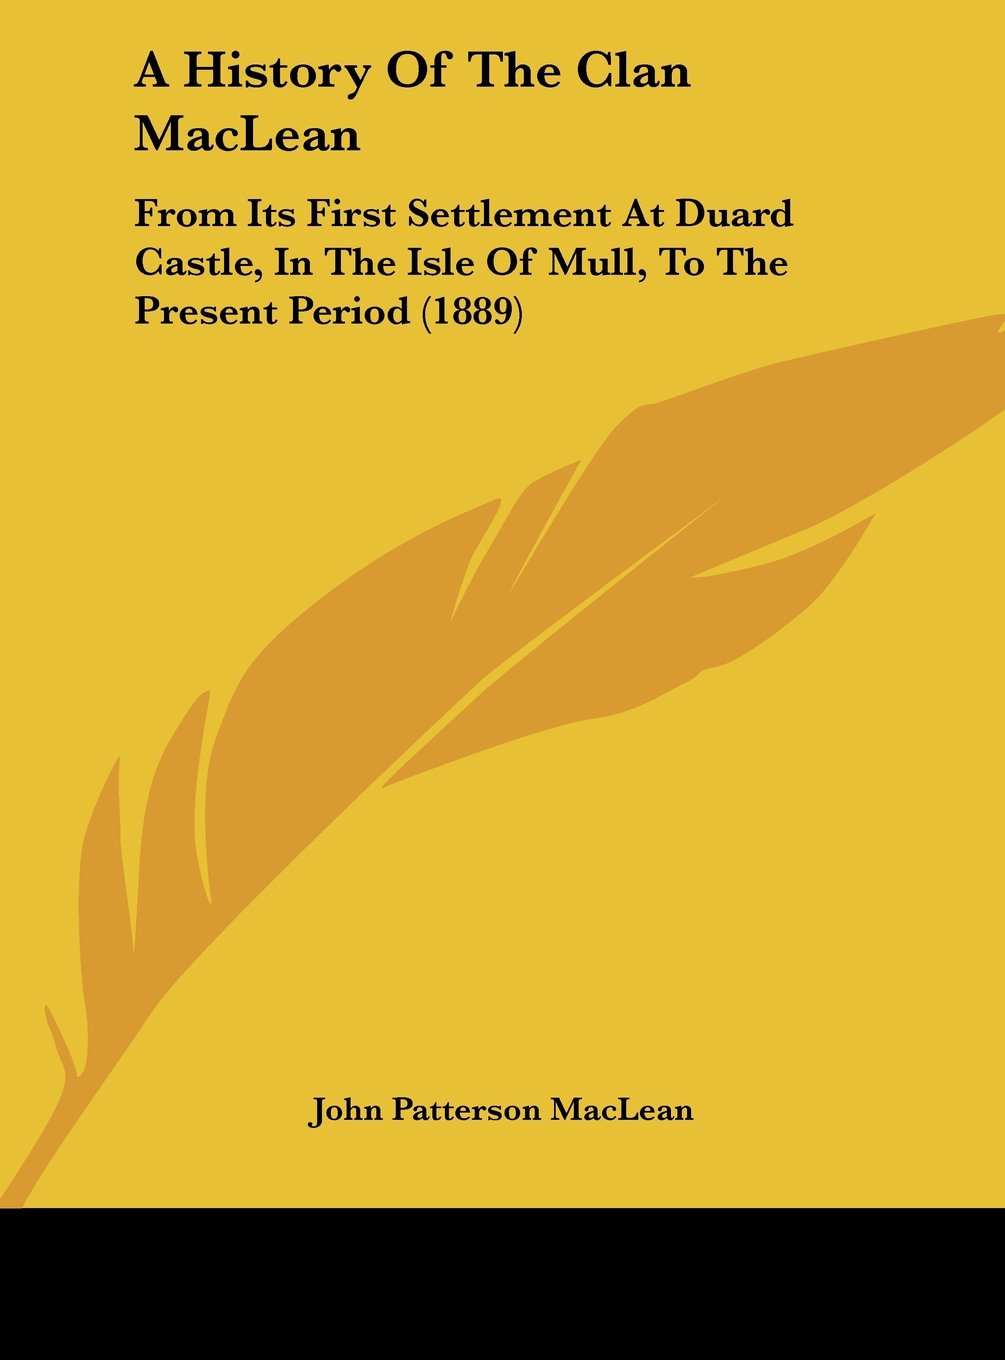 A History Of The Clan MacLean: From Its First Settlement At Duard Castle, In The Isle Of Mull, To The Present Period (1889) PDF